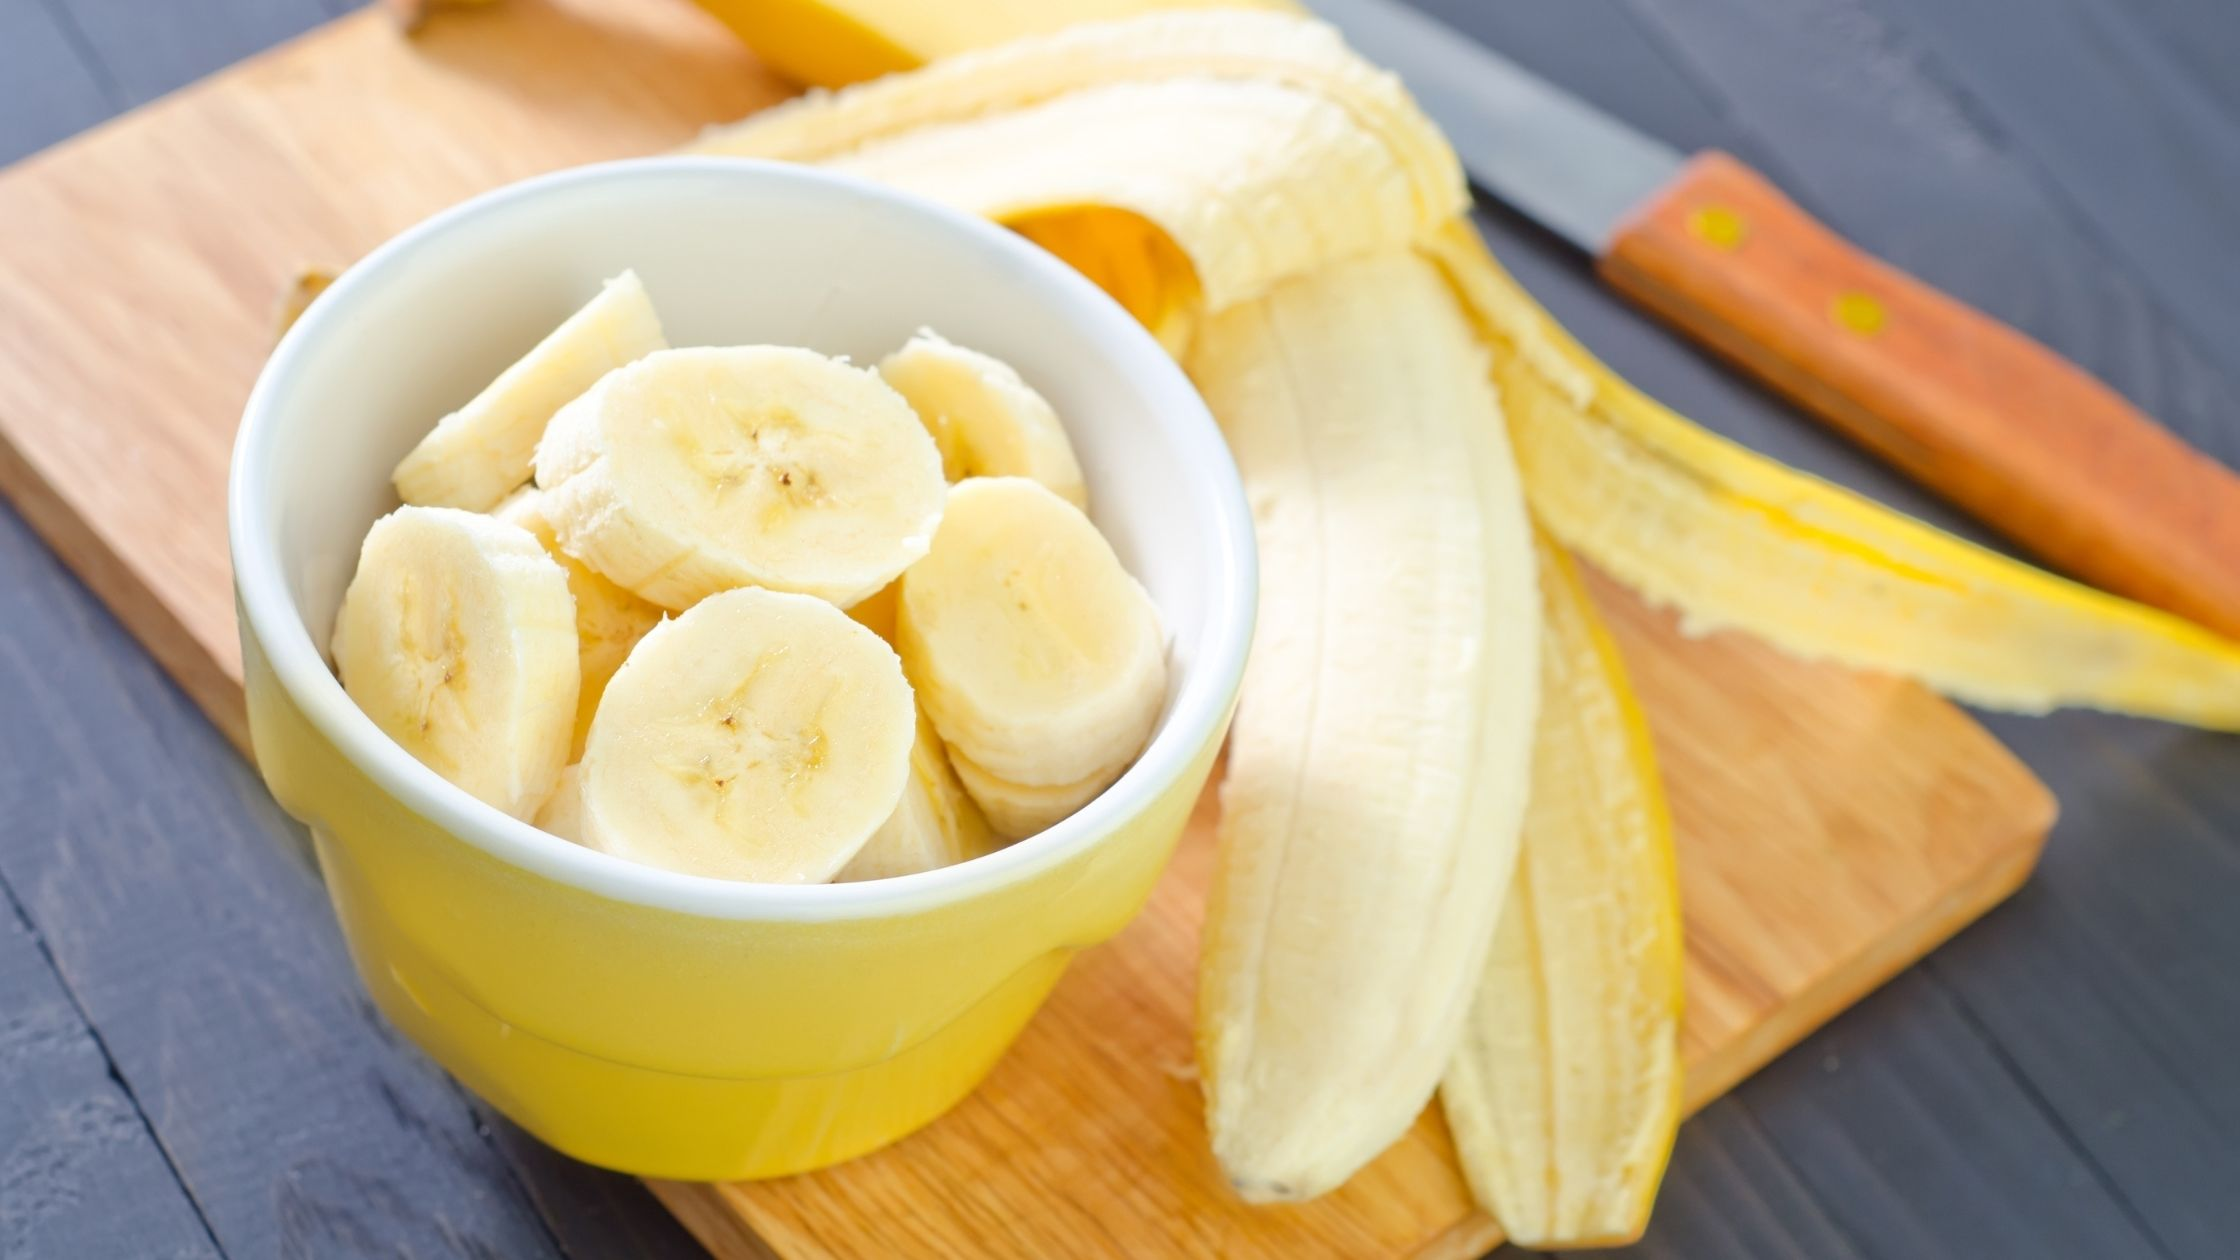 Are bananas okay with a keto diet